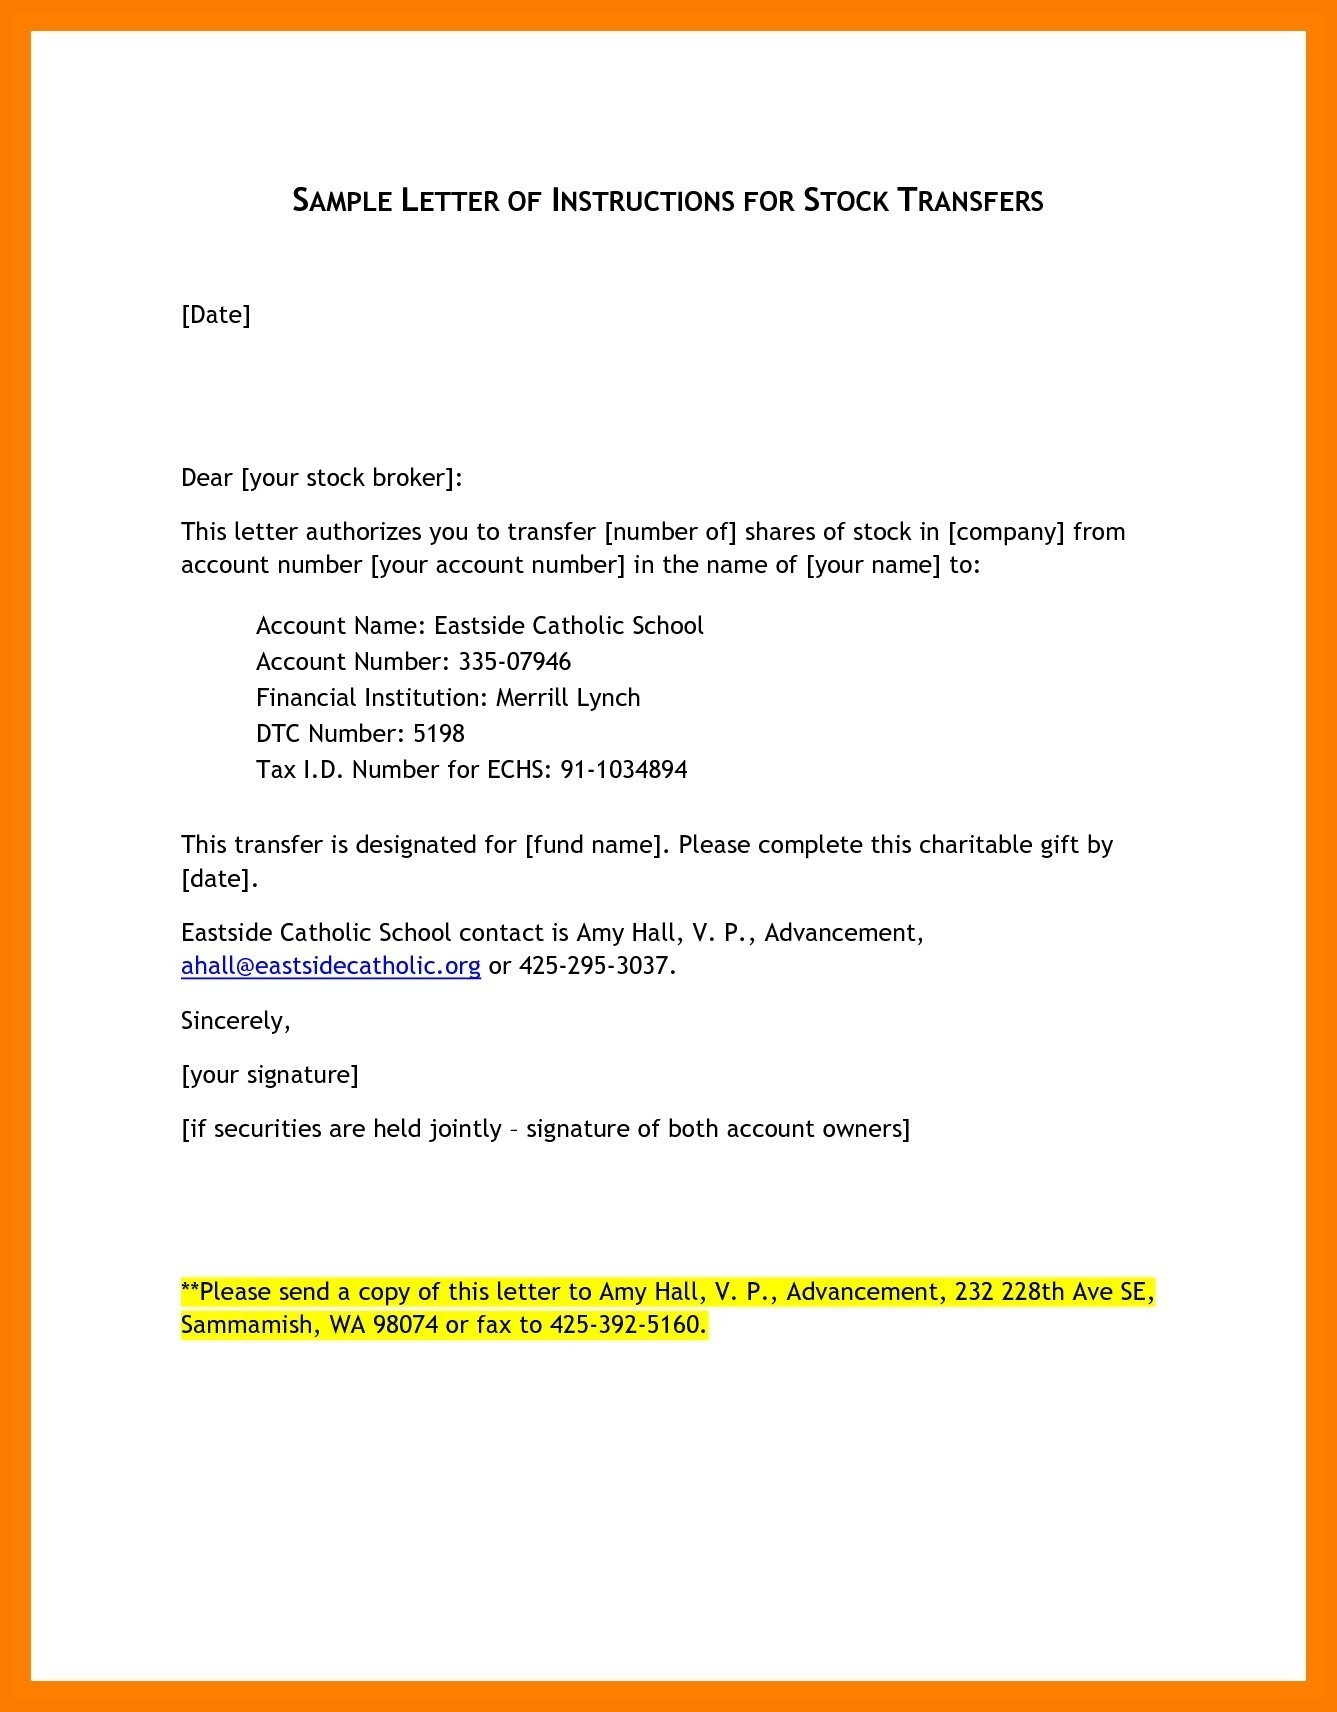 Letter Of Instruction Template Stock Transfer - Request for Transfer Application Letter for School Branch Transfer